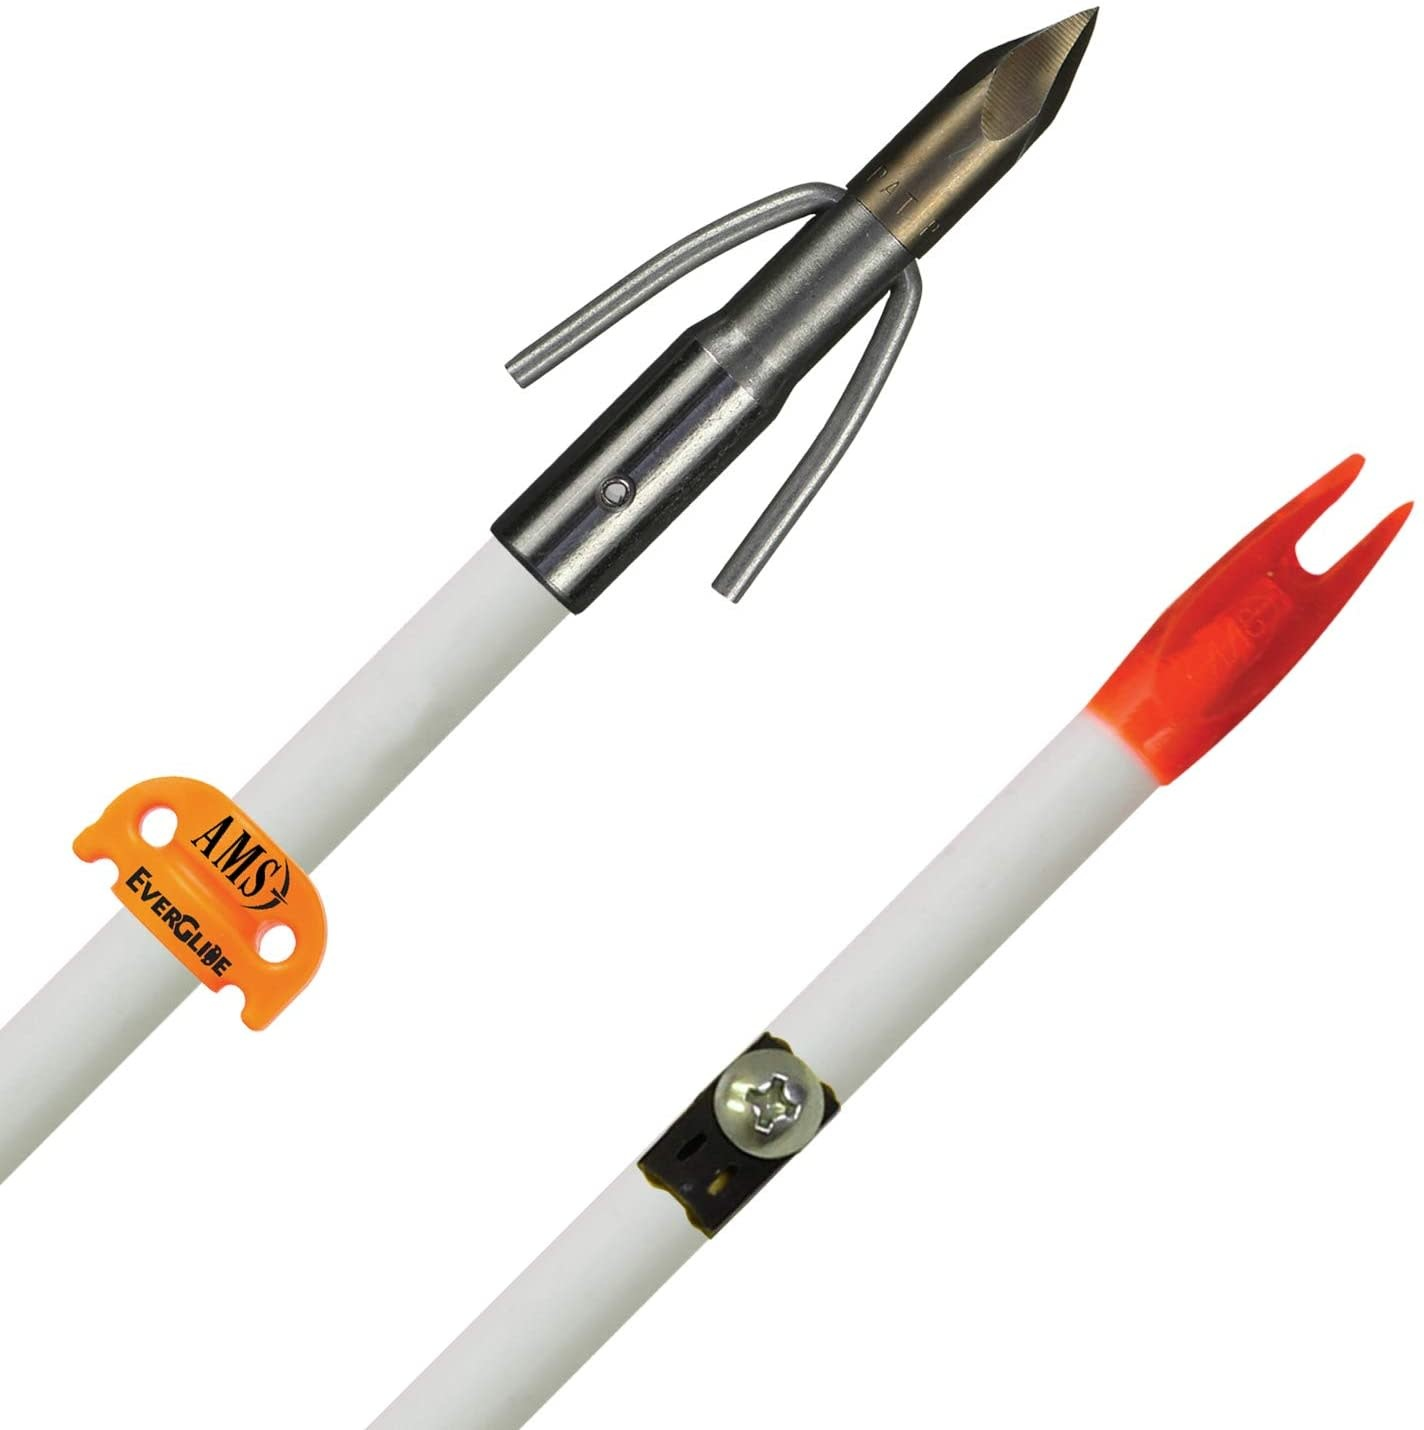 AMS AMS Fiberglass Bowfishing Arrow, Chaos Point White Shaft, 3166-0032